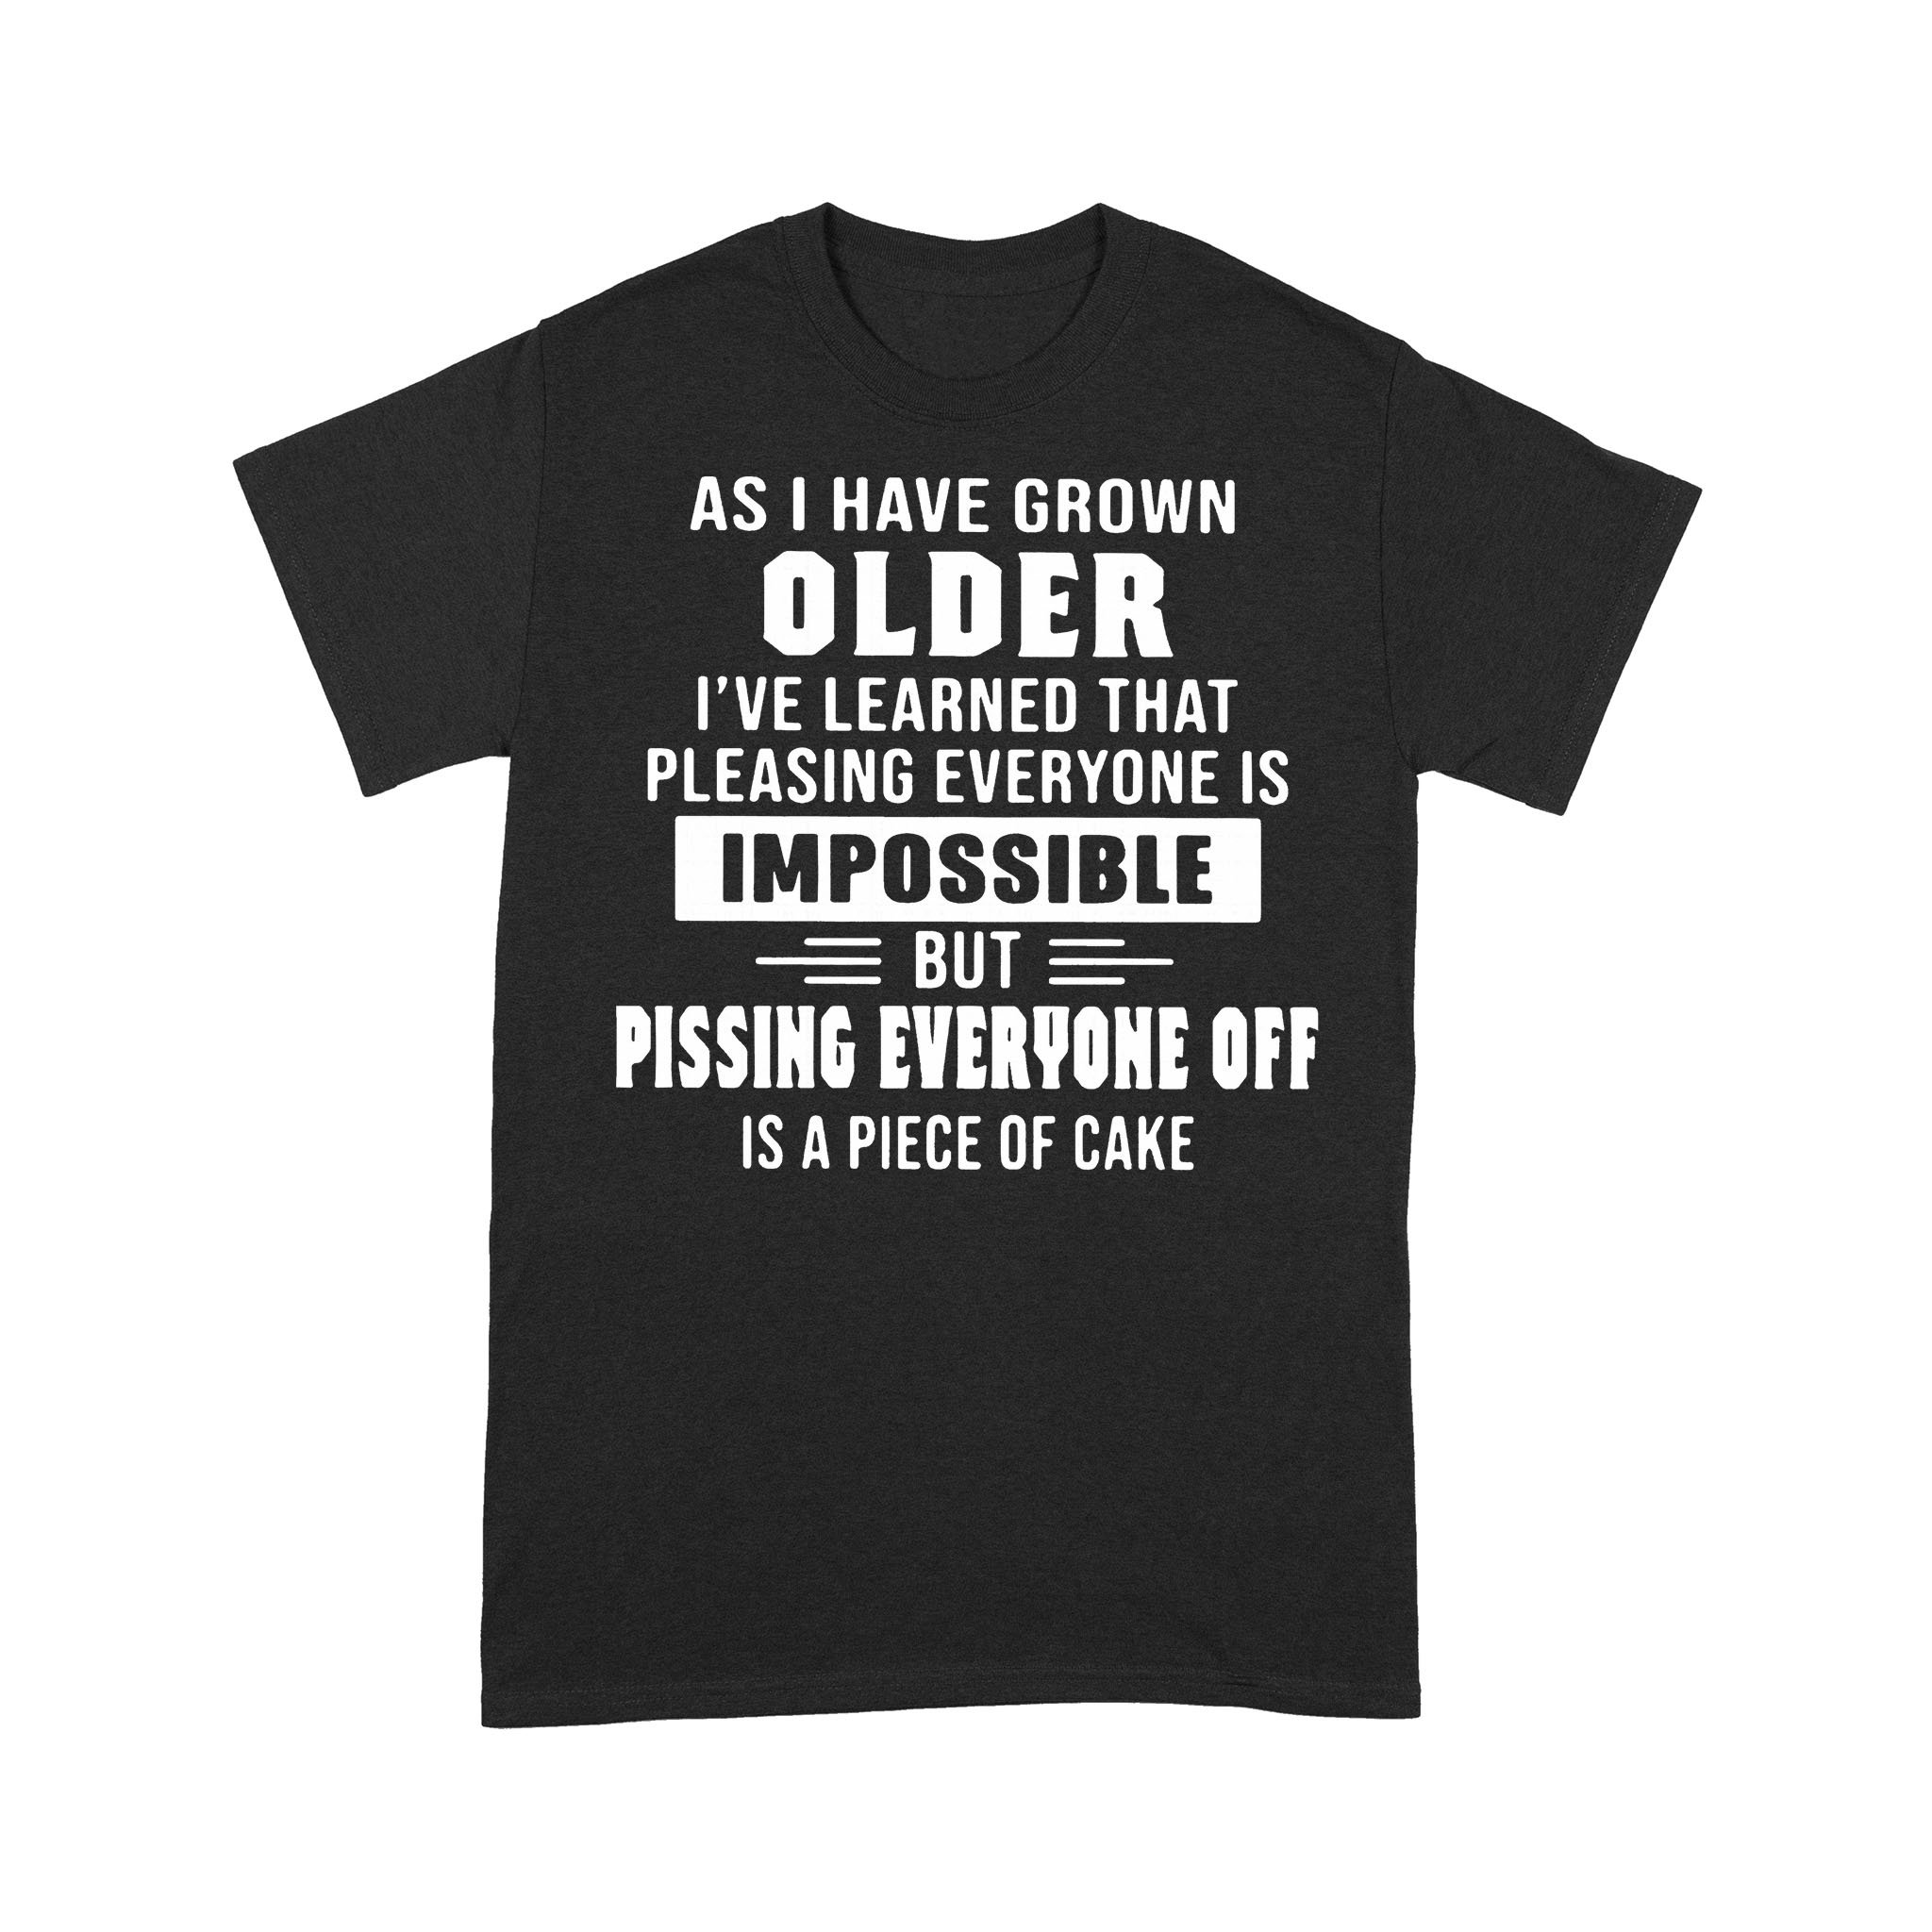 I've Learned That Pleasing Everyone Is Impossible But Pissing Everyone Off Is A Piece Of Cake T-shirt